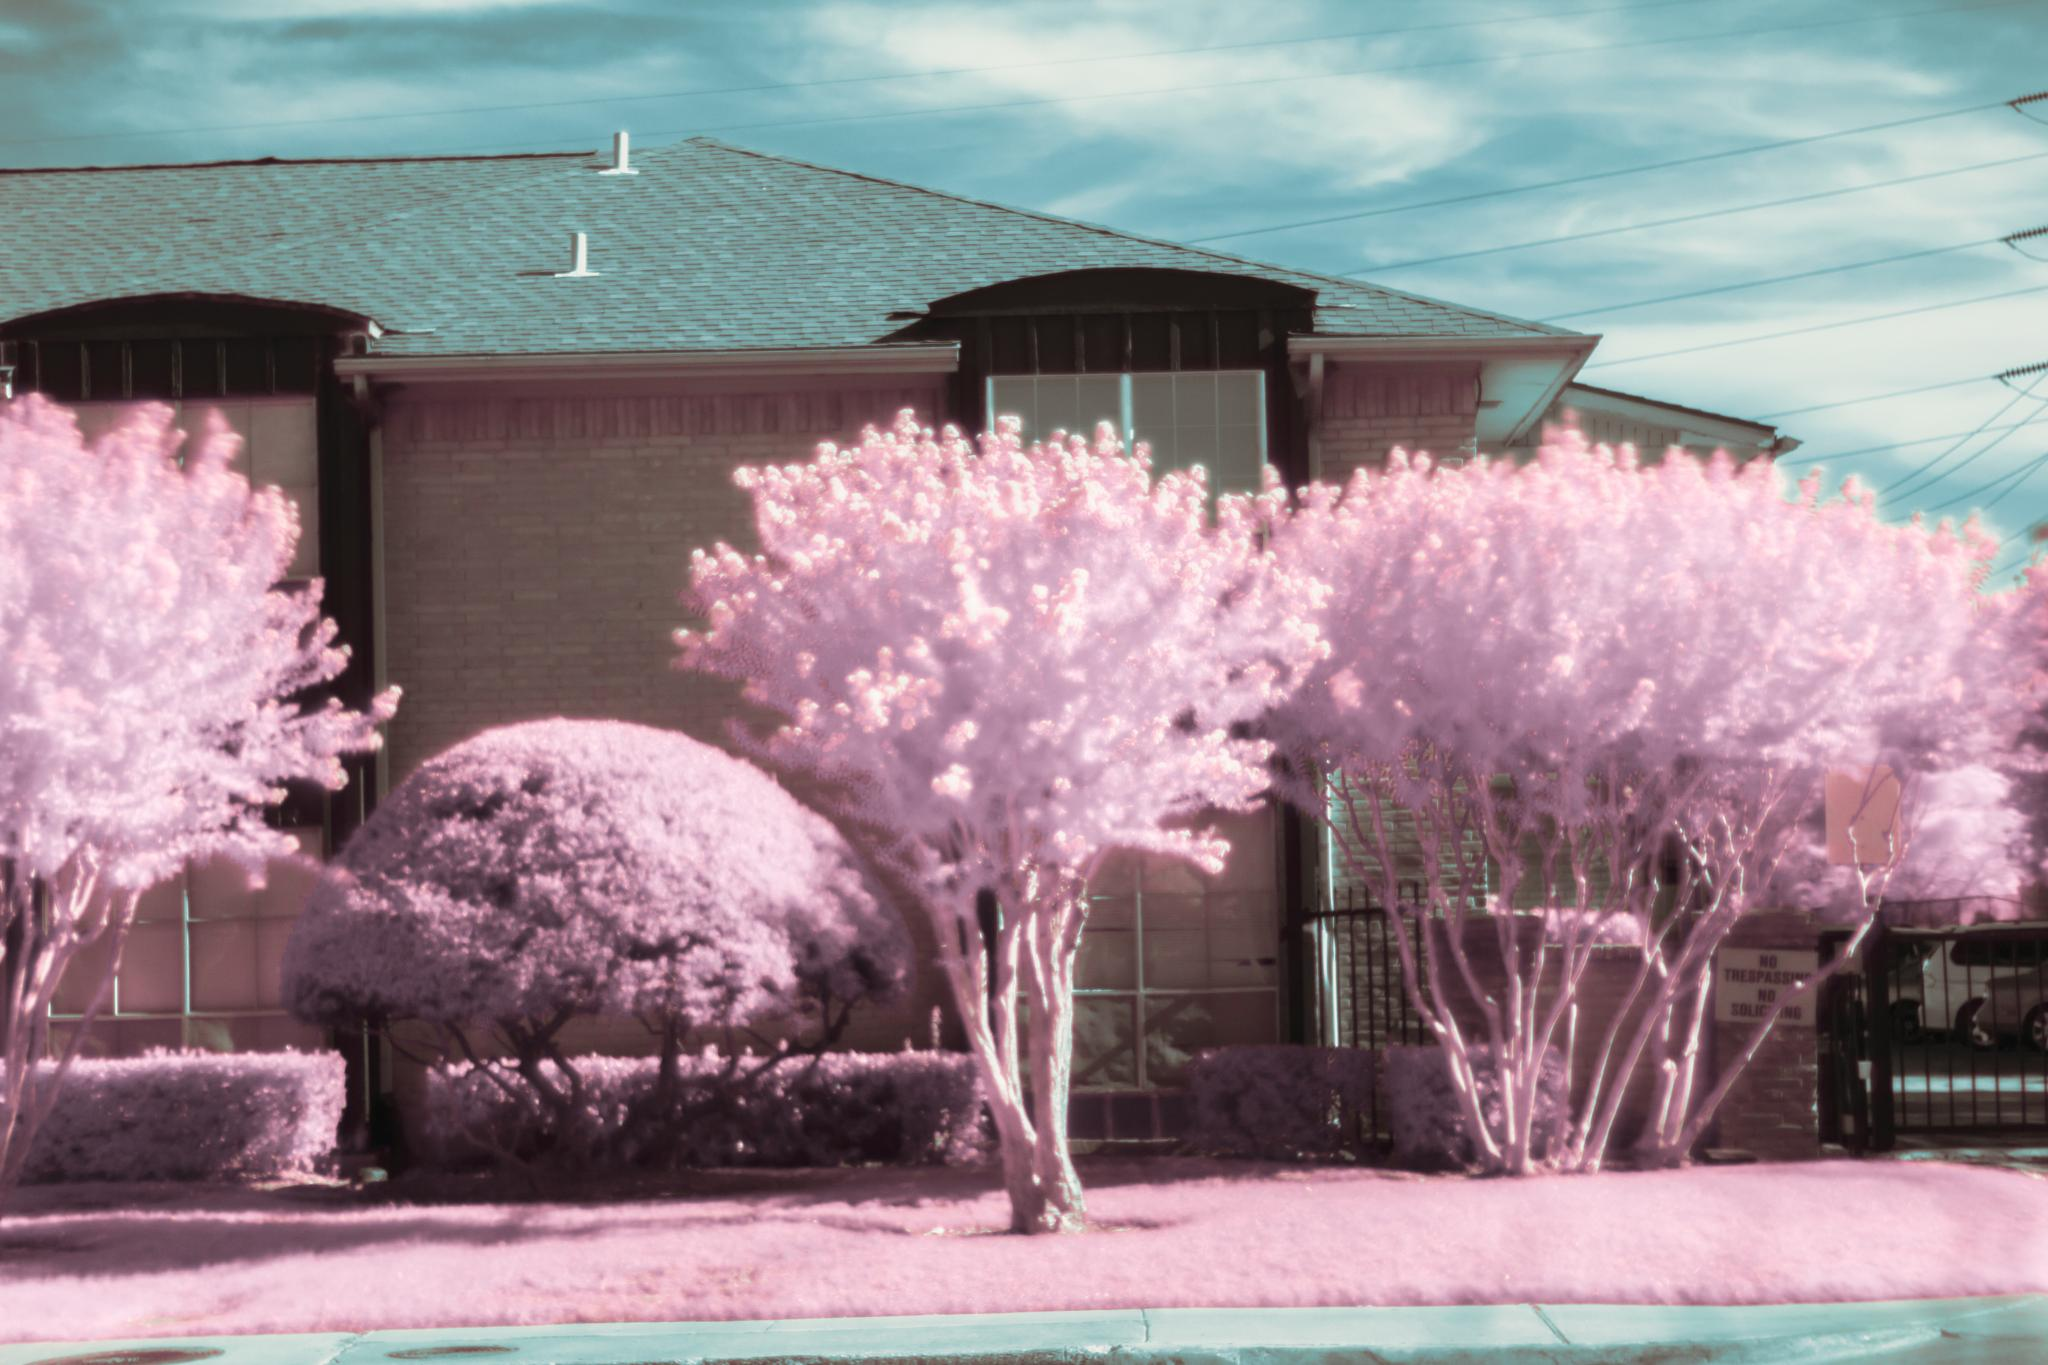 infrared photography by razielcameron